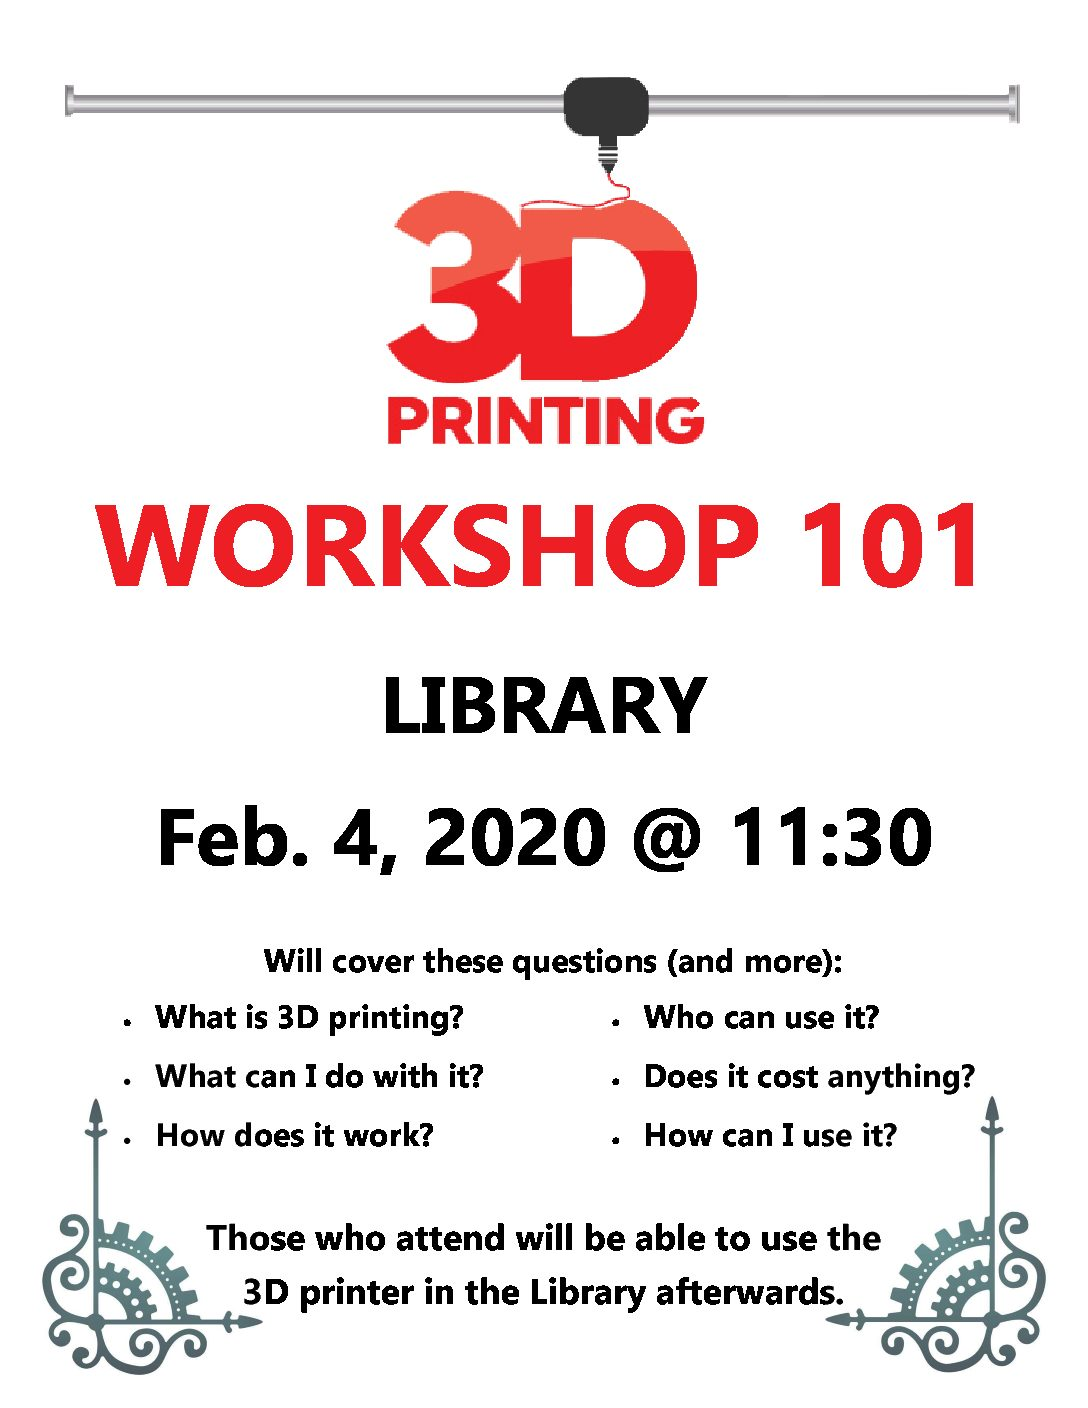 3D printer workshop to be held in Learning Commons